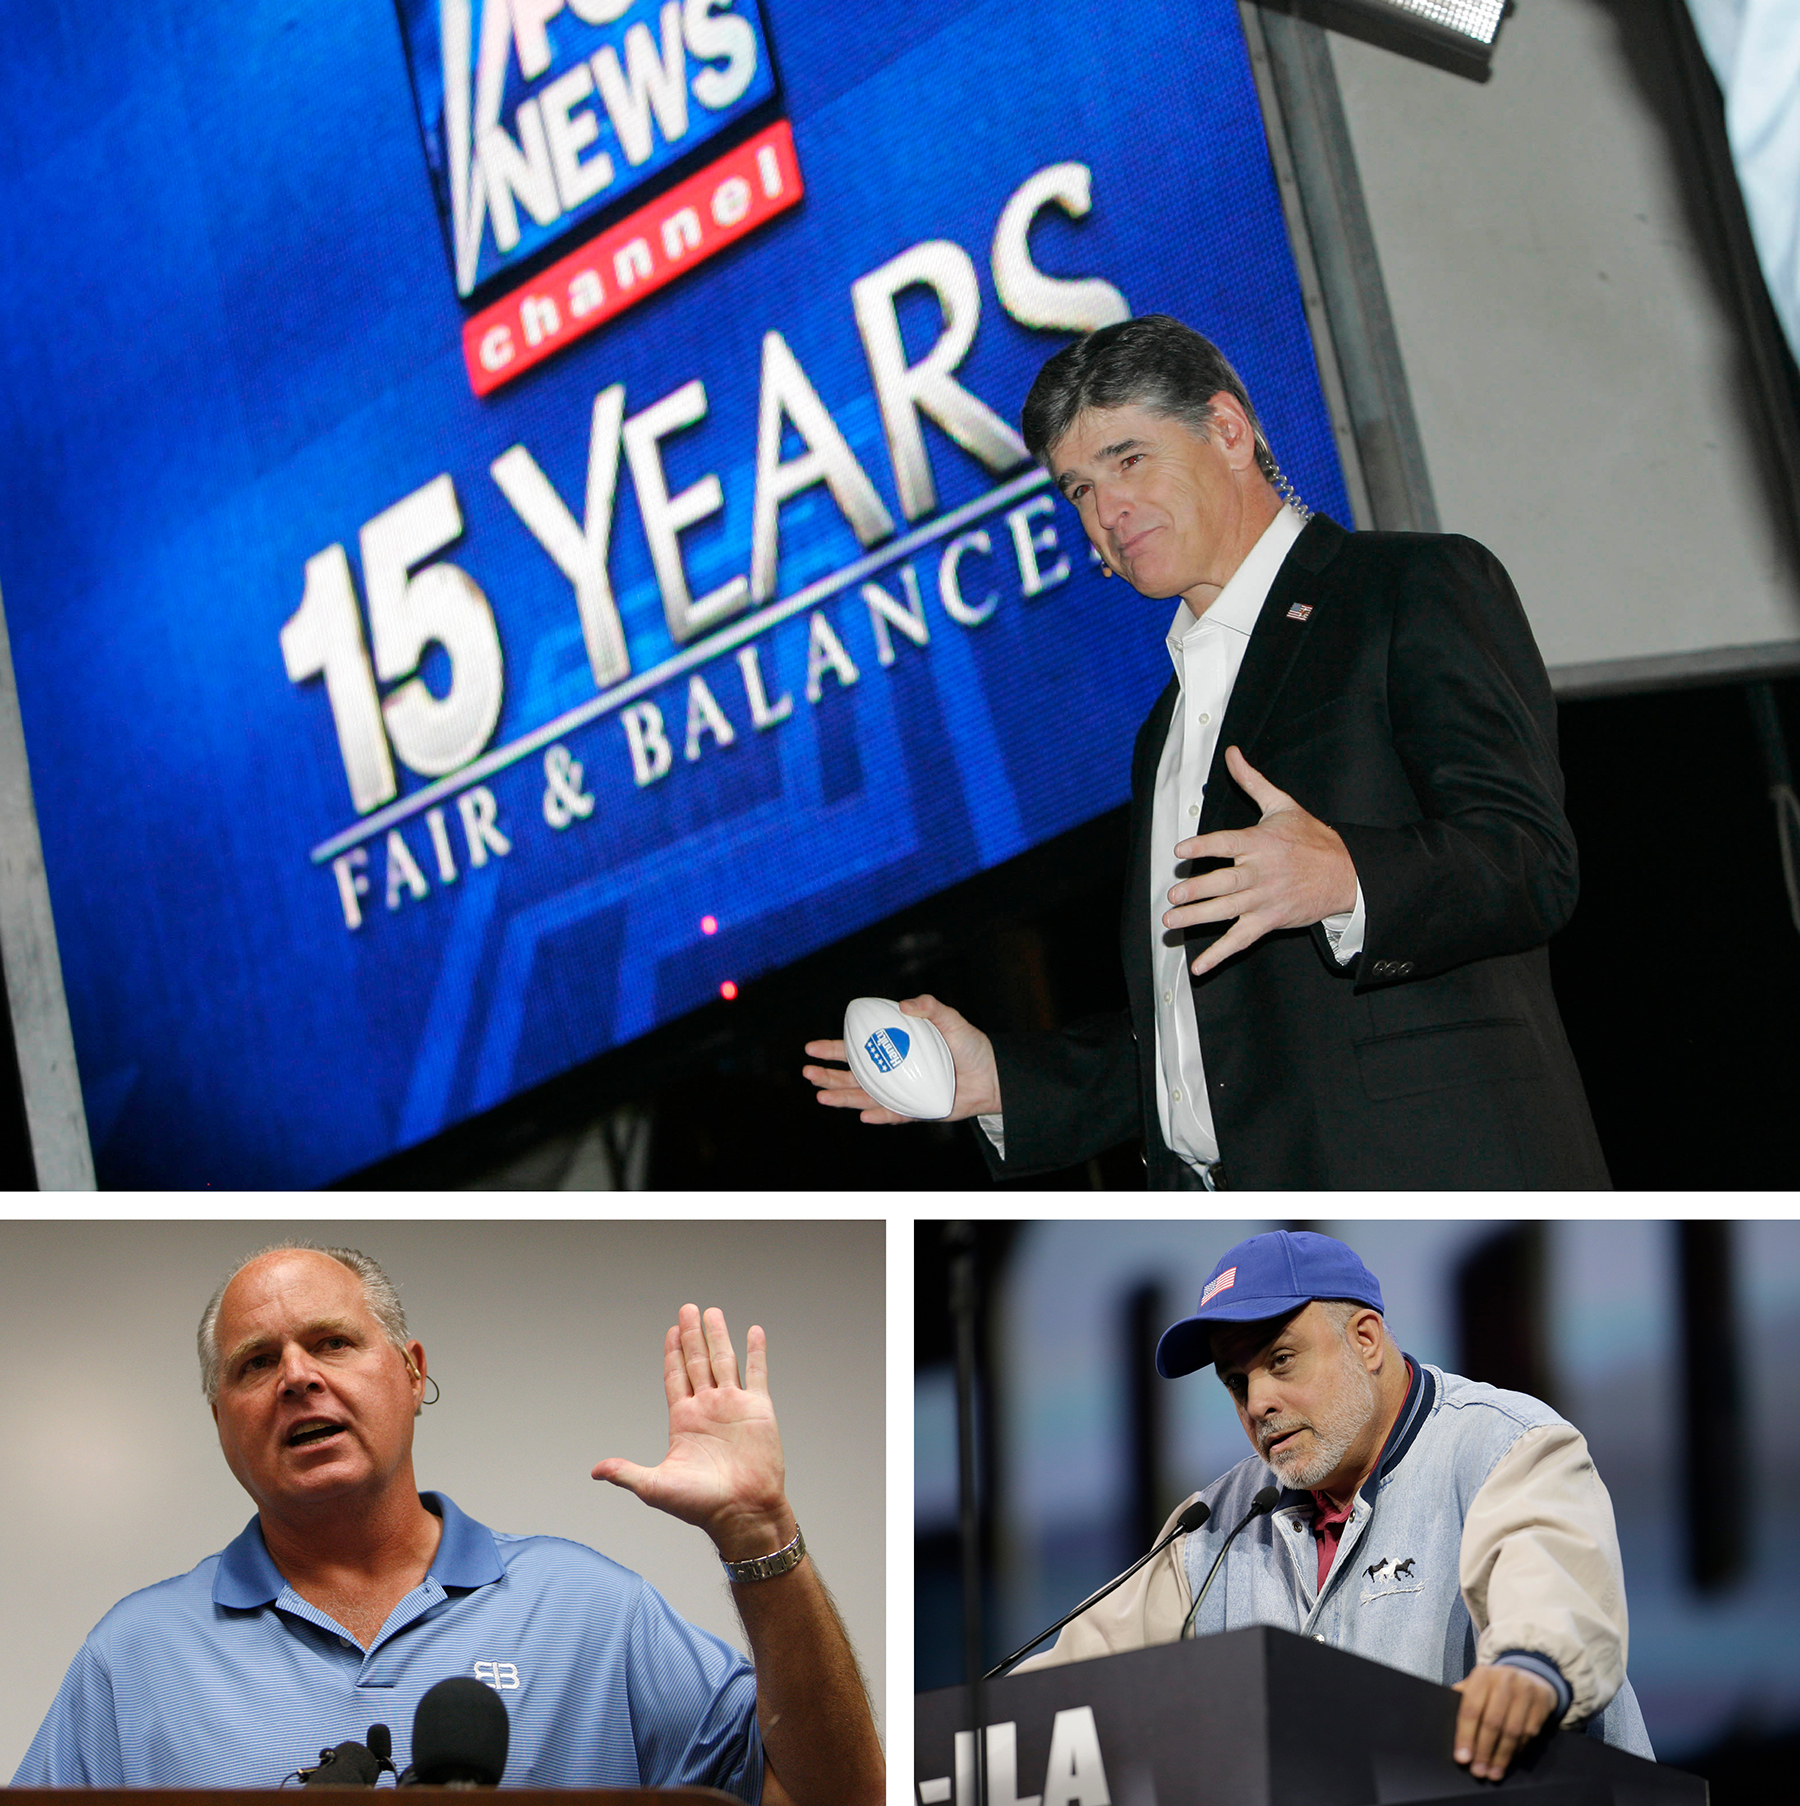 Photos of Sean Hannity, Rush Limbaugh and Mark Levin